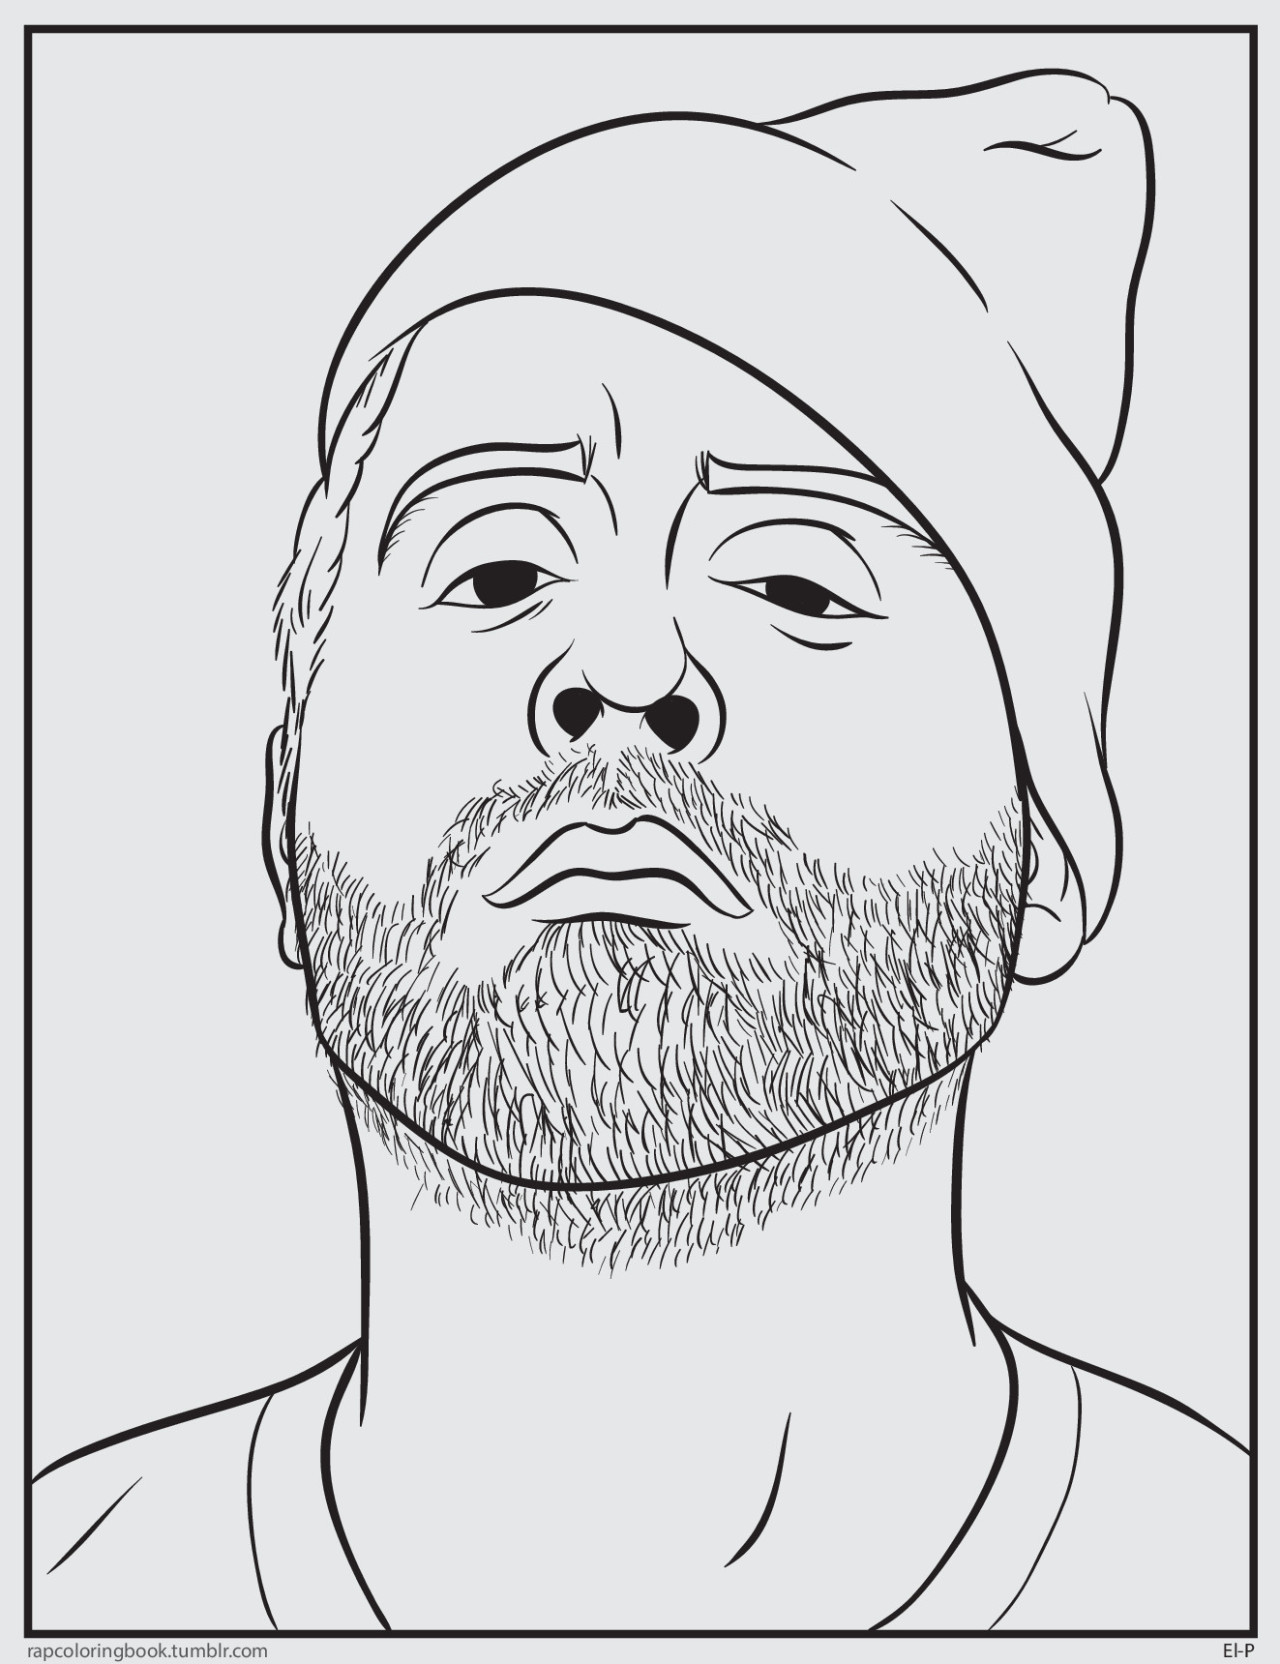 rap star coloring pages - photo#42